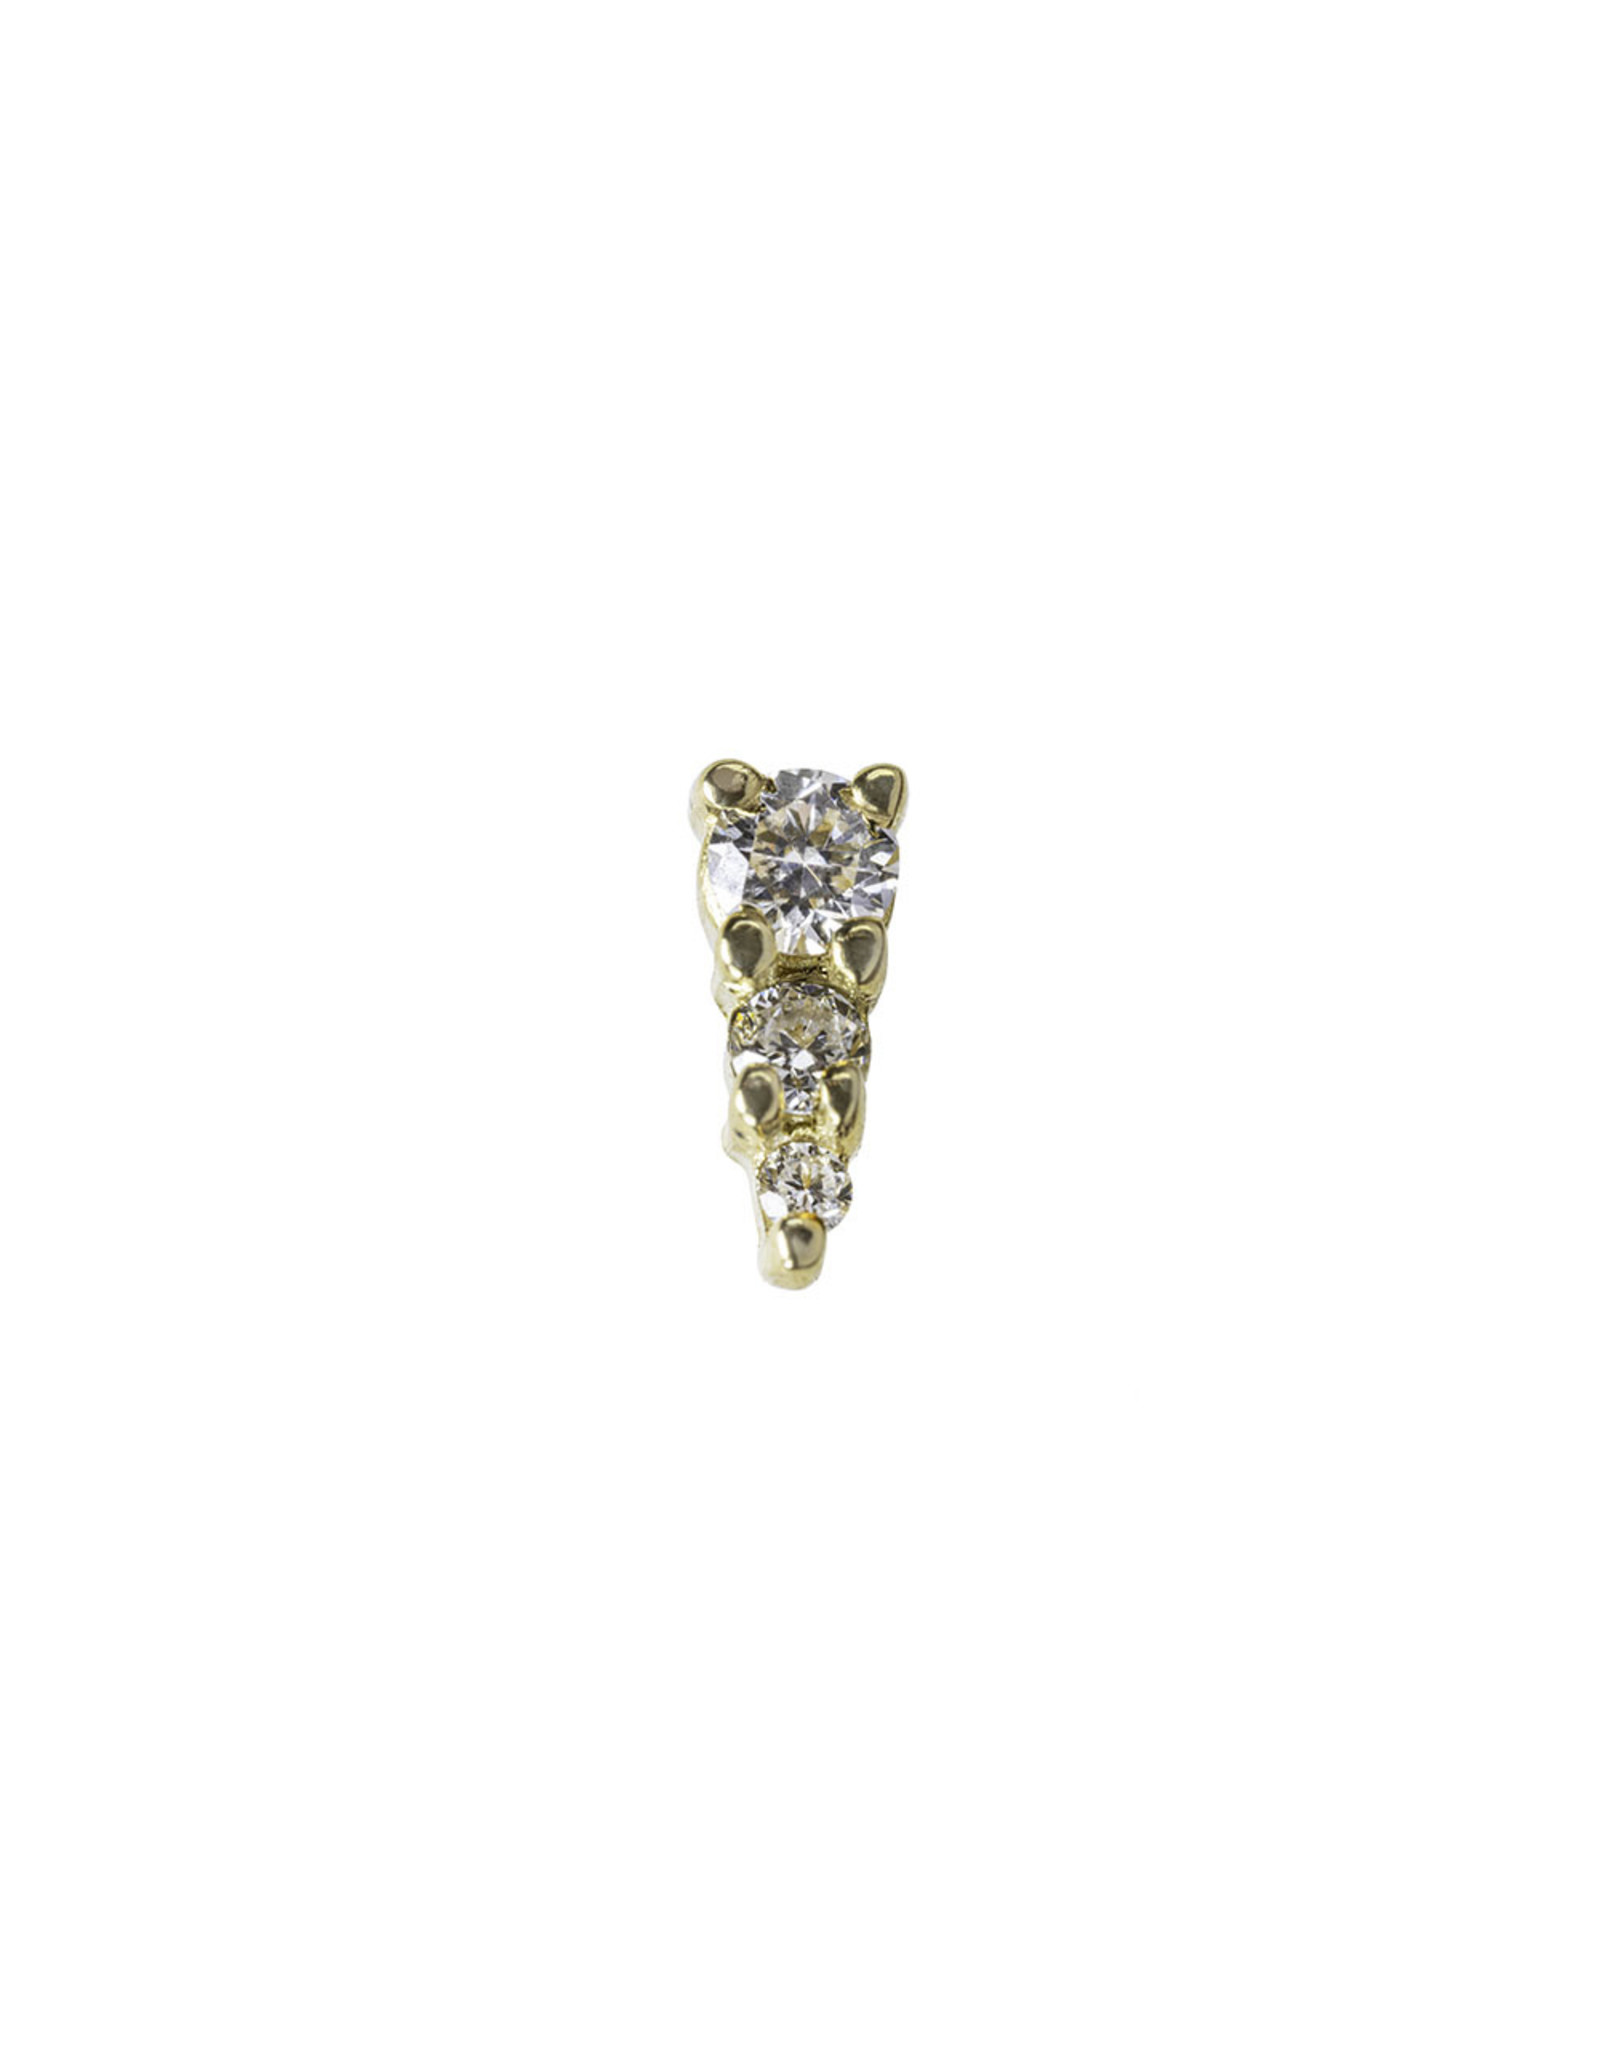 """BVLA BVLA yellow gold """"Jeanie 3"""" press fit end with 2.0, 1.5, and 1.0 VS1 Diamond"""